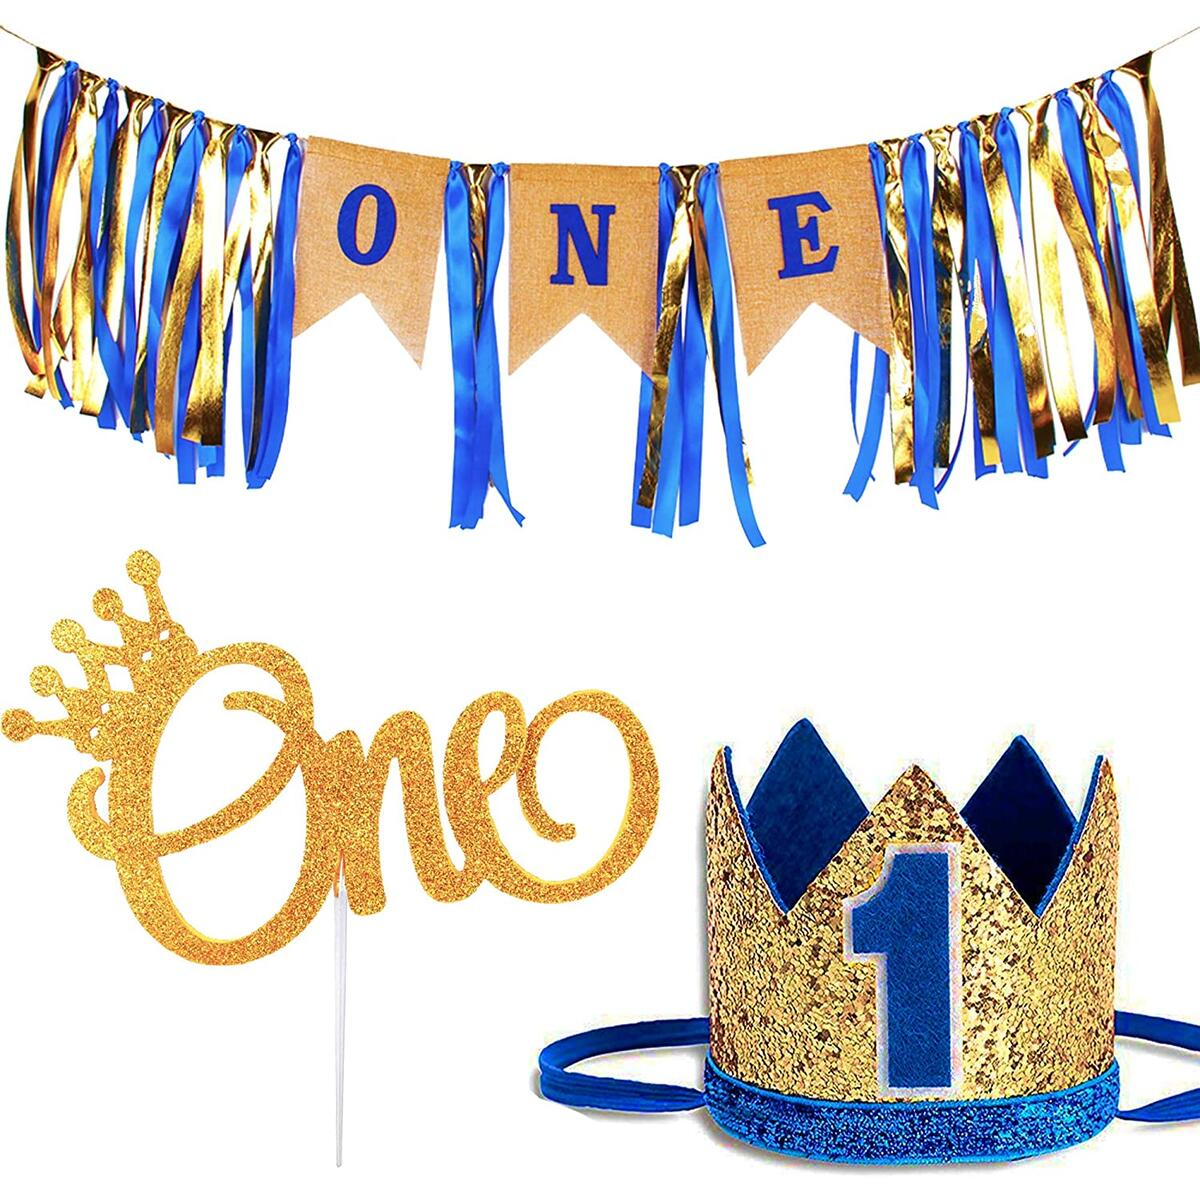 1st Birthday Baby Boy Royal Decorations - Boys Highchair Burlap Decoration Supplies Set, First Blue Prince Crown Hat, ONE Glitter Gold Cake Topper - Double Sided with Crown | Smash Party Decor Kit